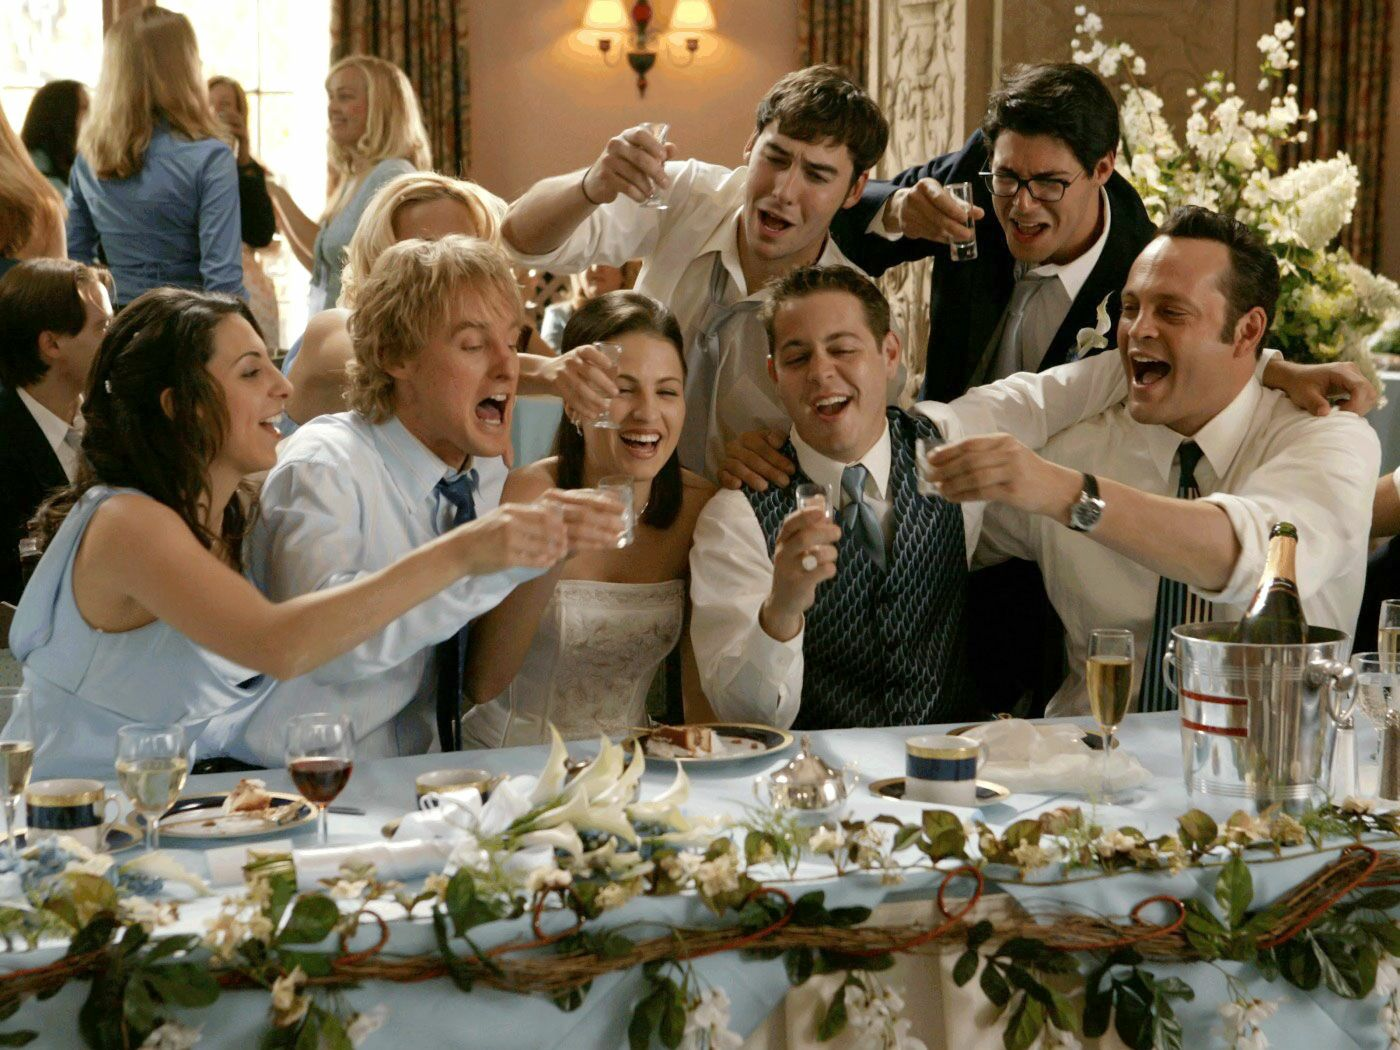 Who attends the wedding rehearsal dinner?